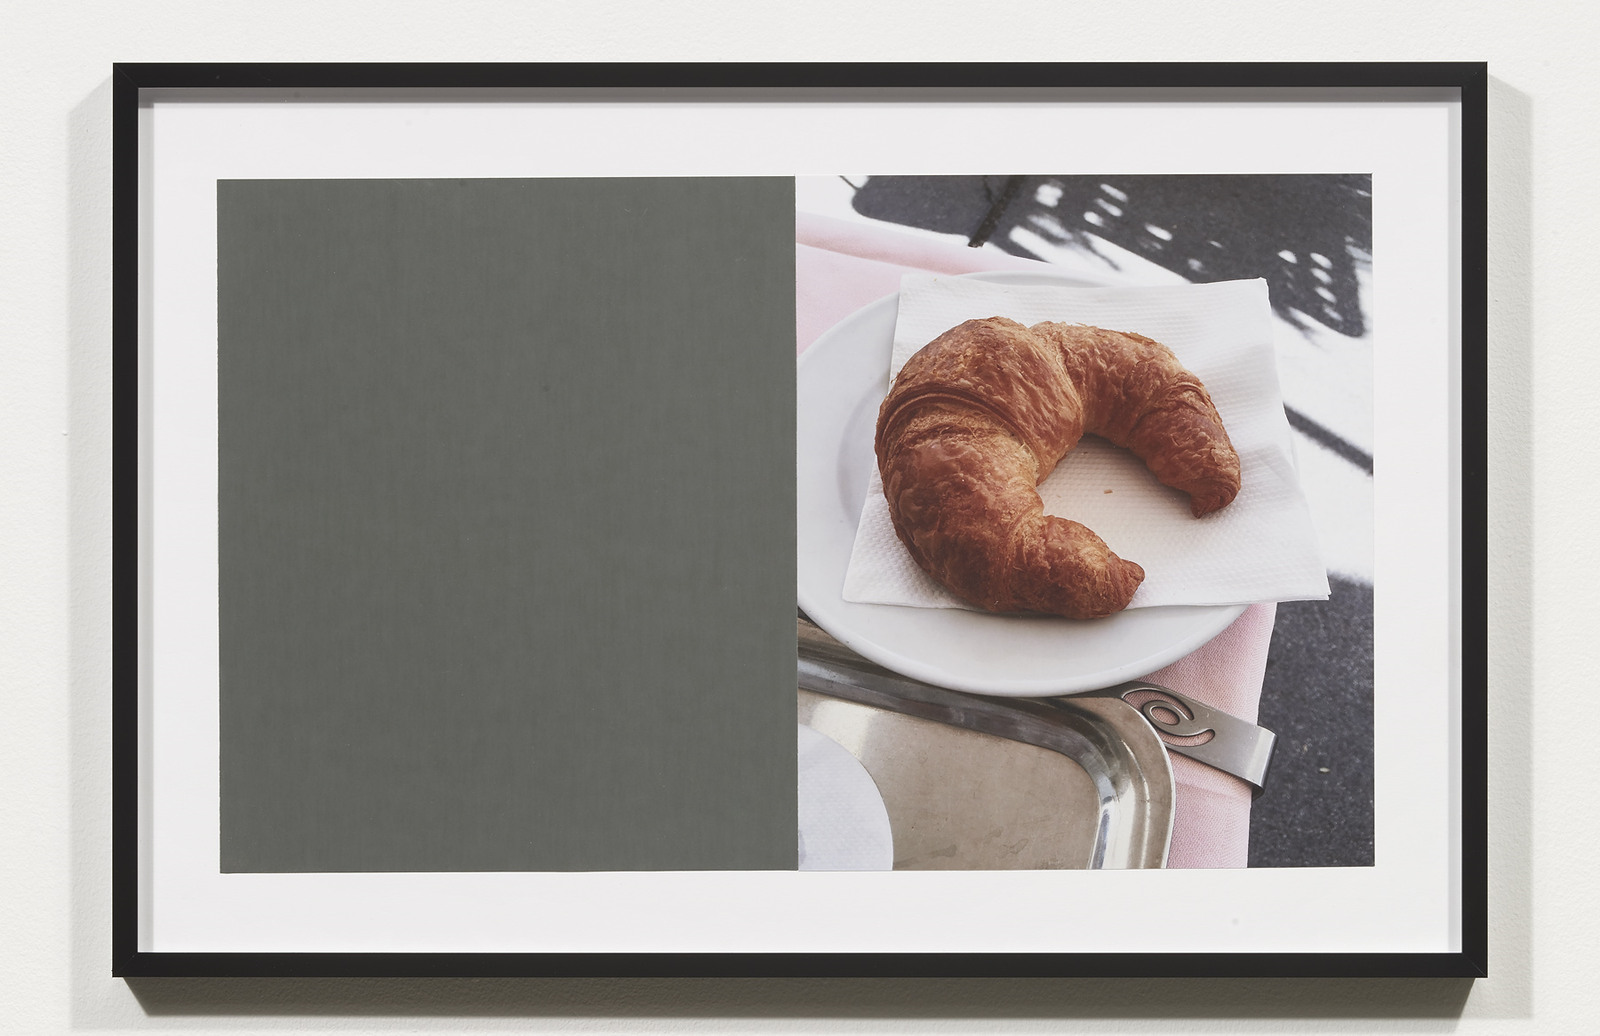 Wermers_Croissants & Architecture #15, 2016_C-print, sandpaper sheet, framed_14 3_8 x 21 1_2 in_NW00056PG